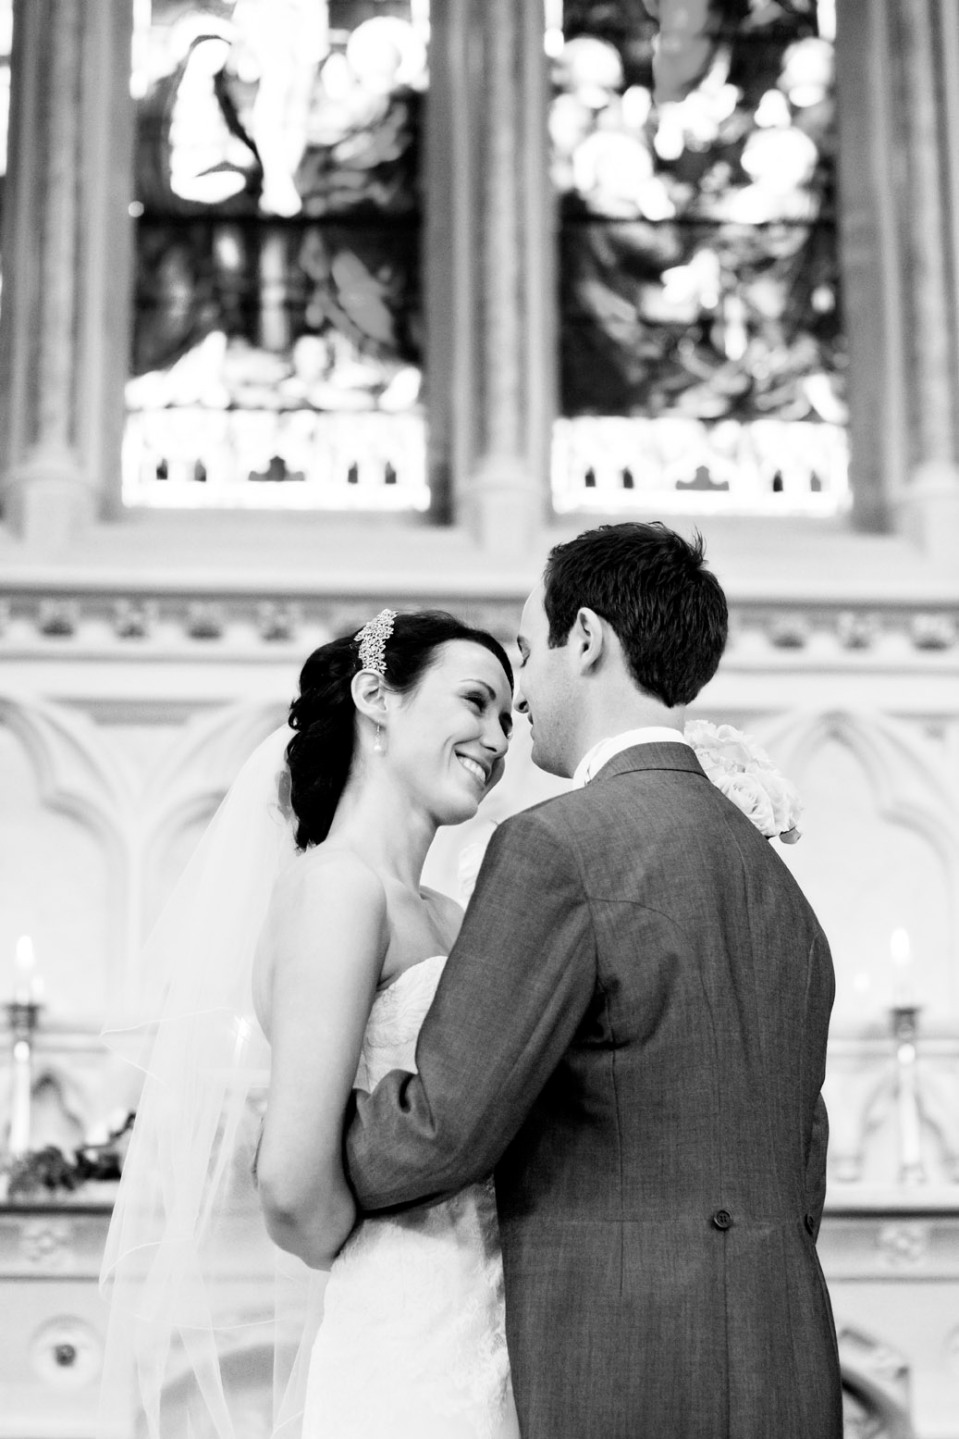 church wedding | Ireland